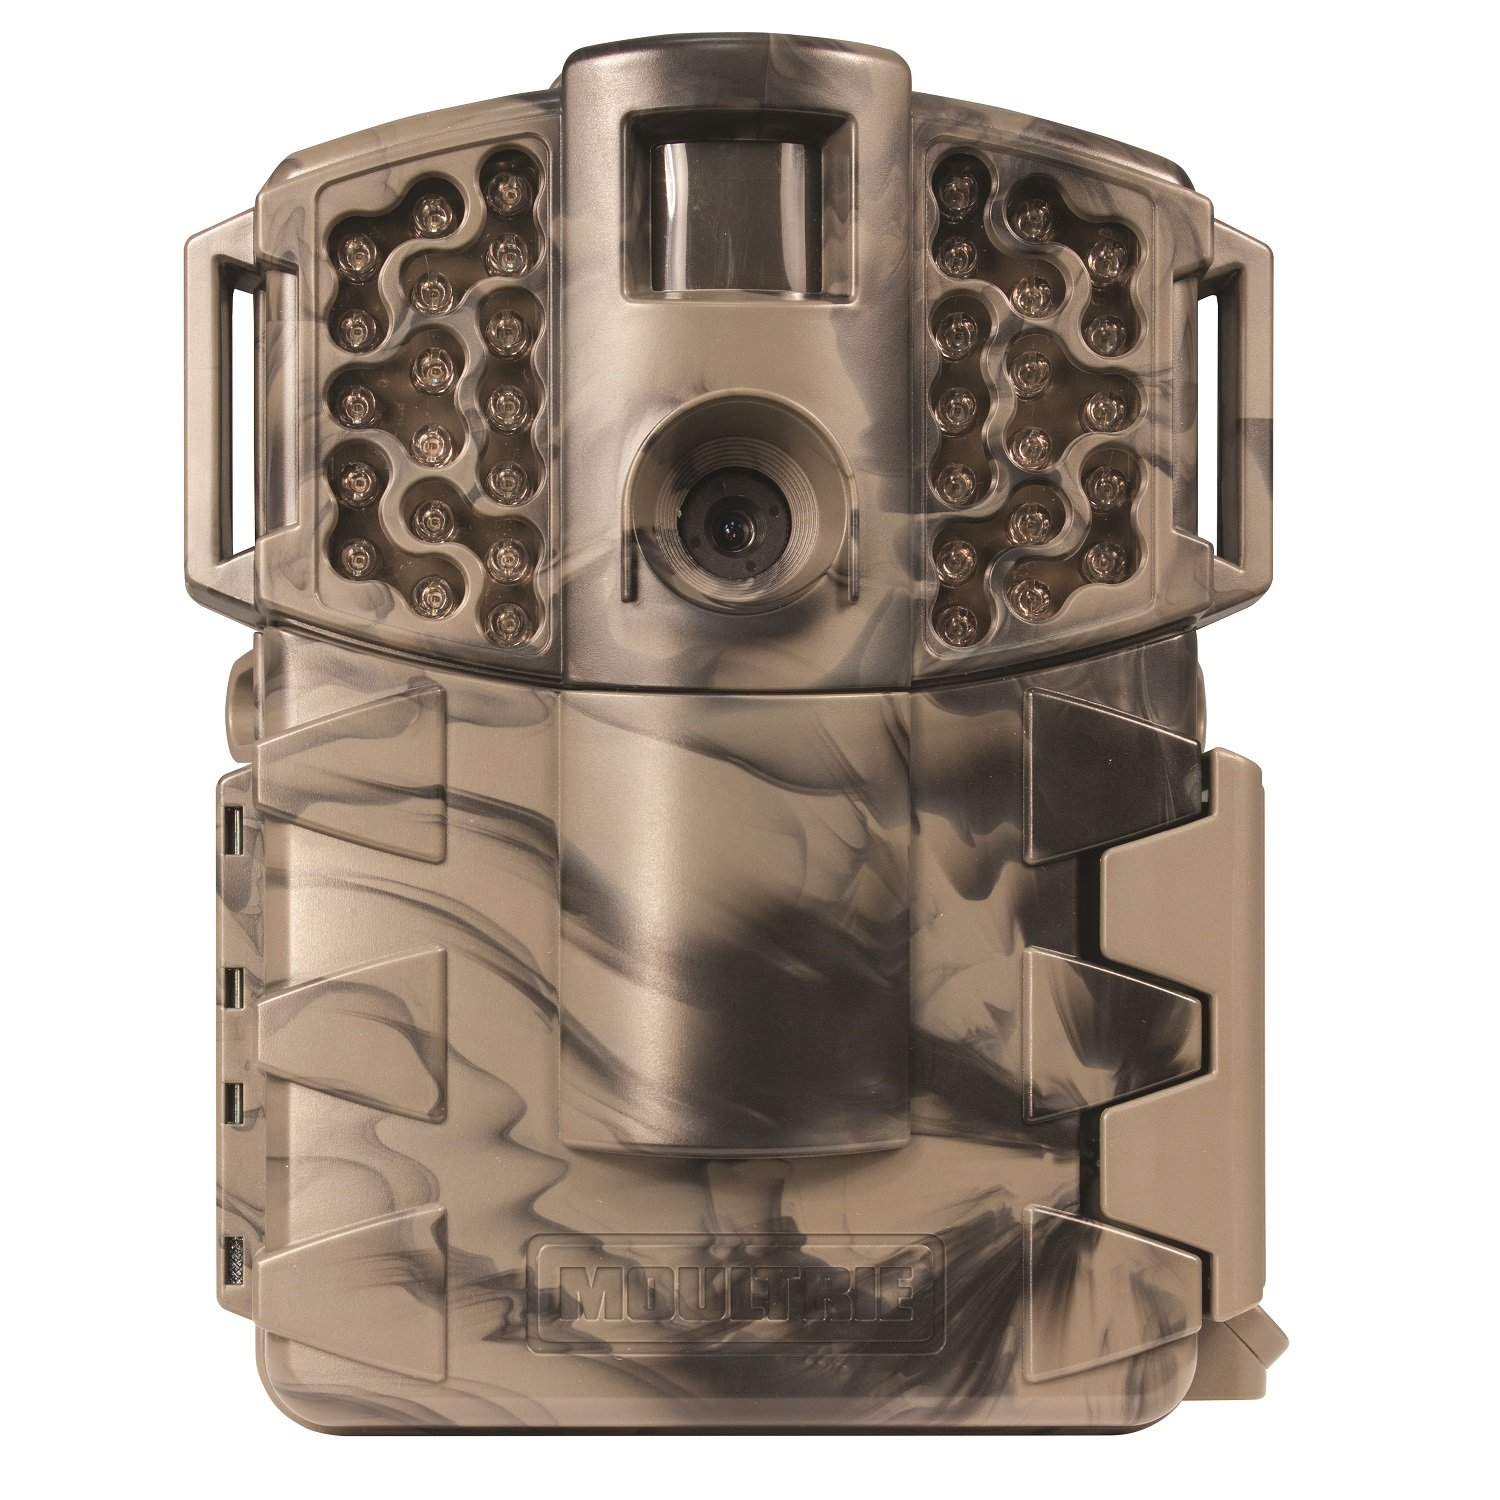 Amazon.com : Moultrie A-7i Trail Camera, Camouflage : Sports ...